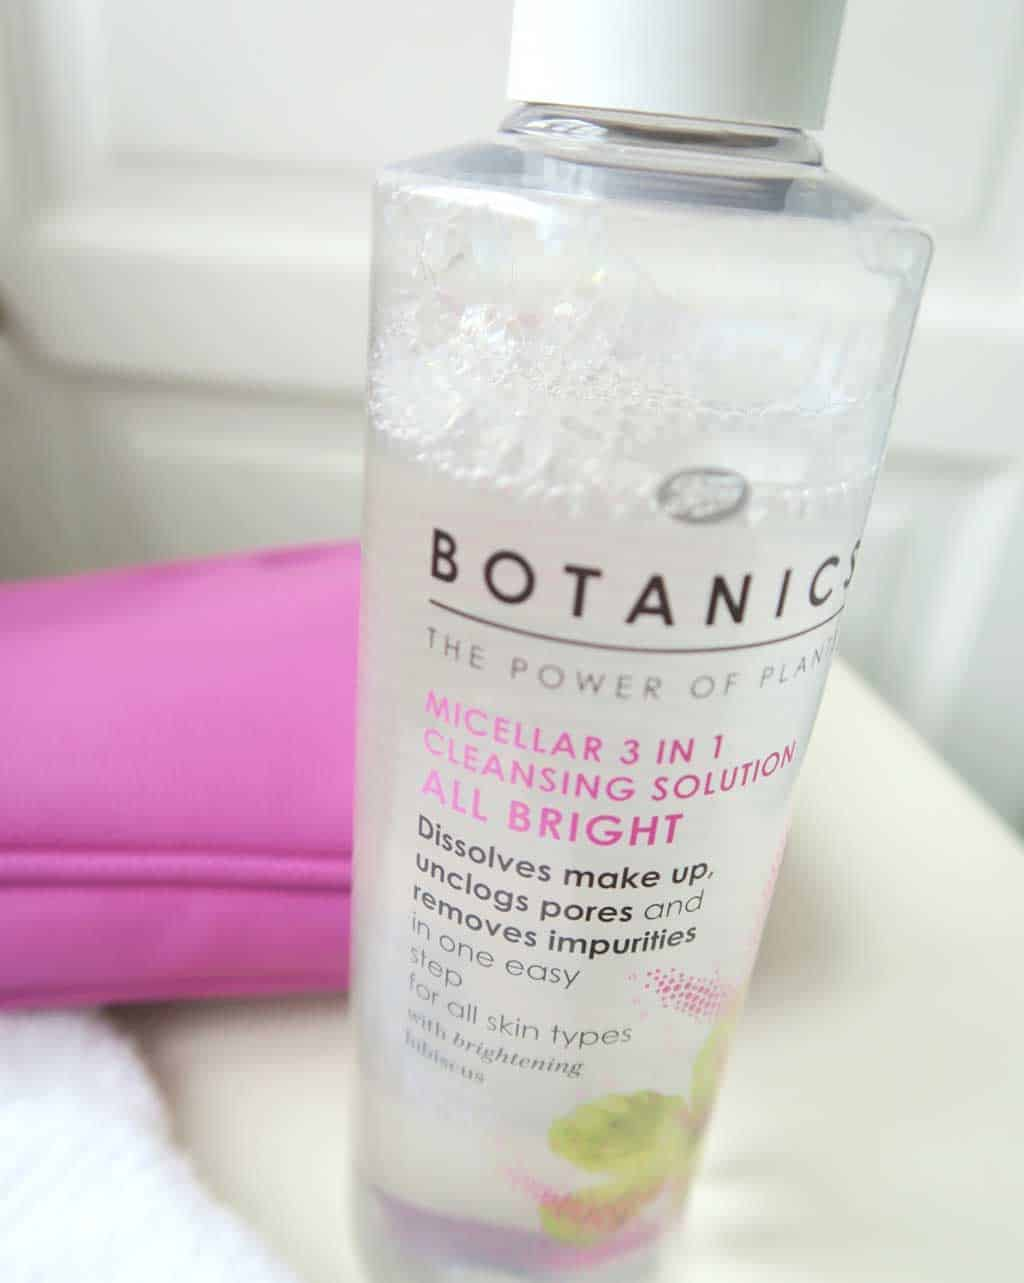 boots botanics skincare review — Boots Botanics Miscellar 3 in 1 Cleansing Solution